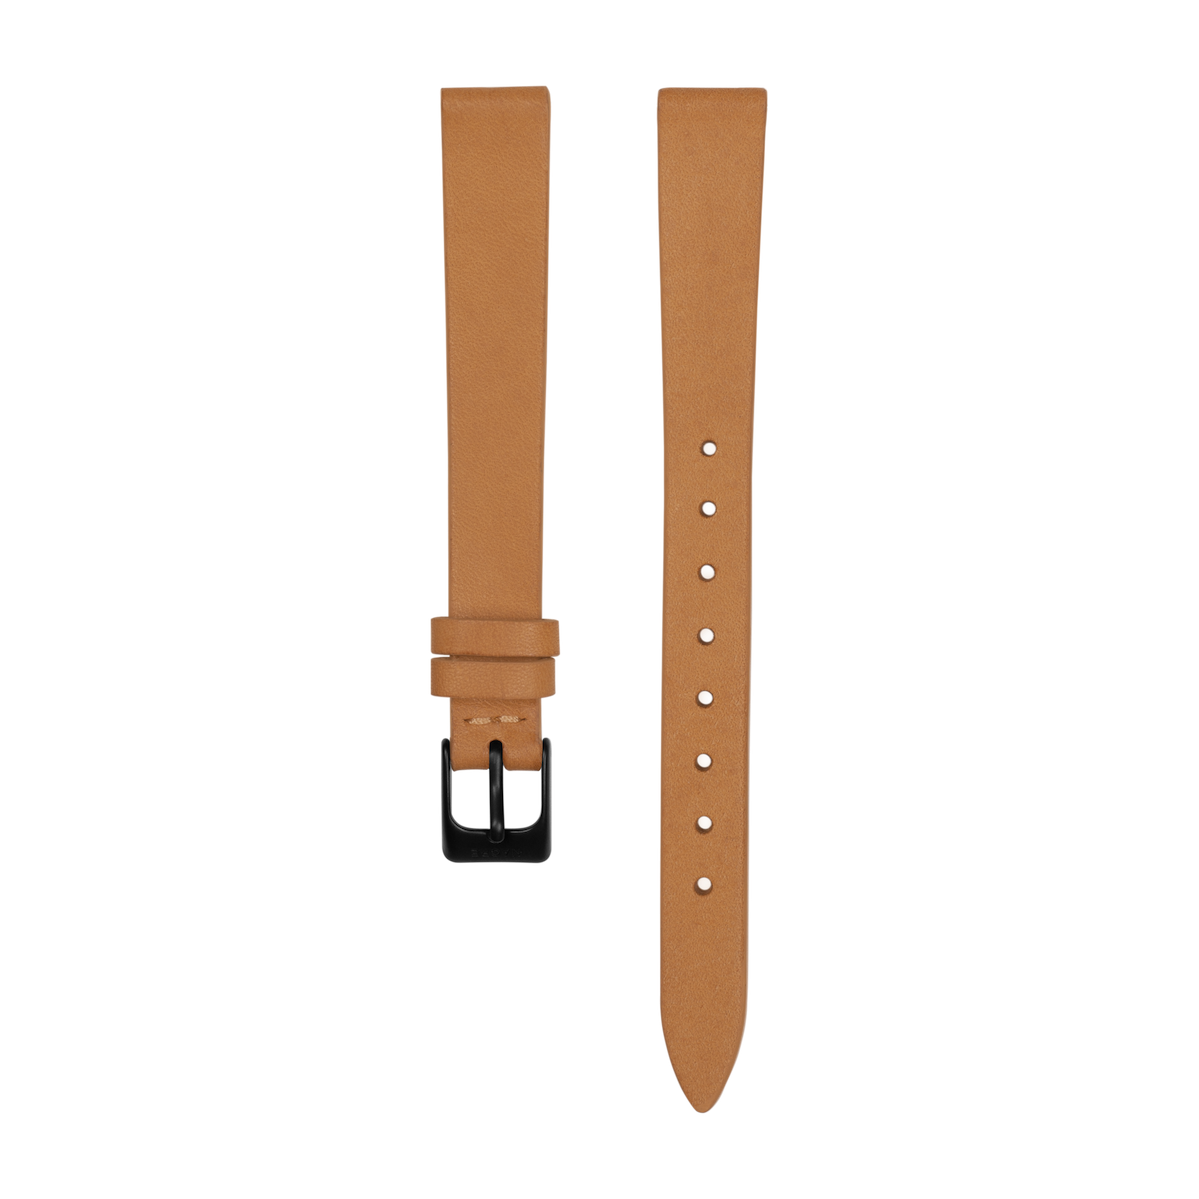 Strap - Italian Leather - Natural Leather - Matte Black - 12mm